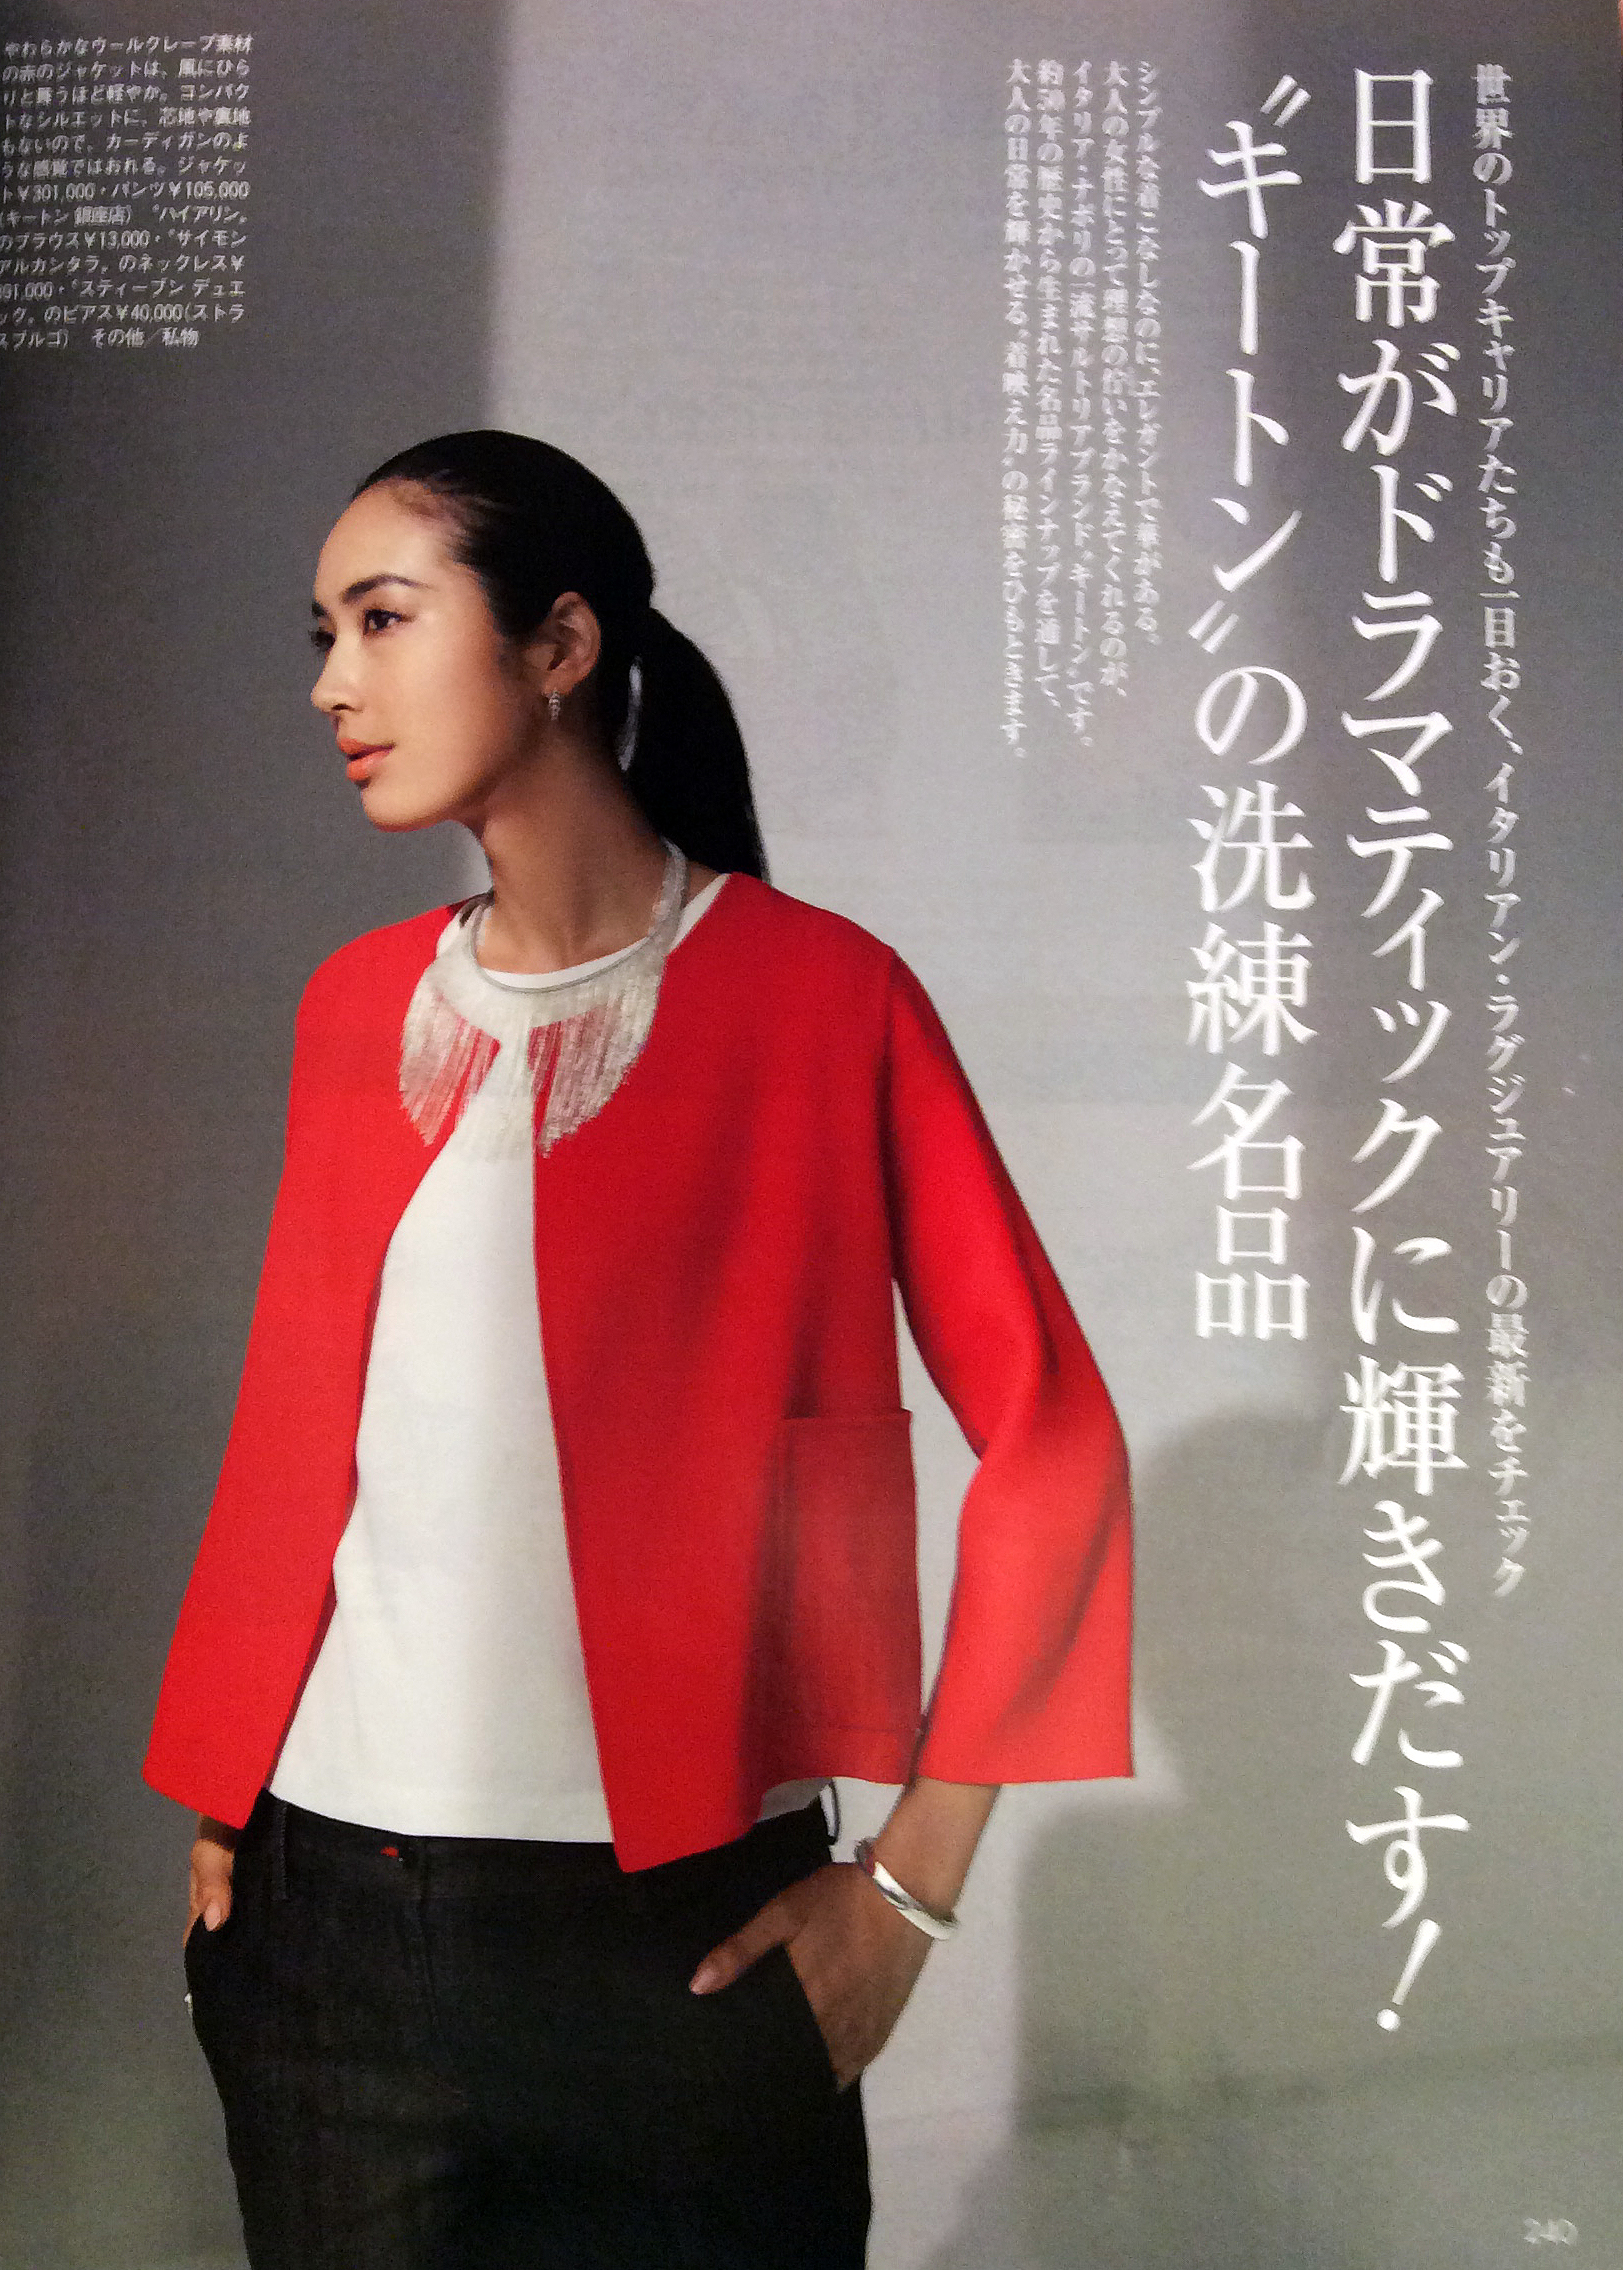 PRECIOUS MAGAZINE JAPAN, JUNE 2016 ISSUE, SIMON ALCANTARA STERLING SILVER HAND WOVEN COLLAR FROM THE STARCHILD COLLECTION.